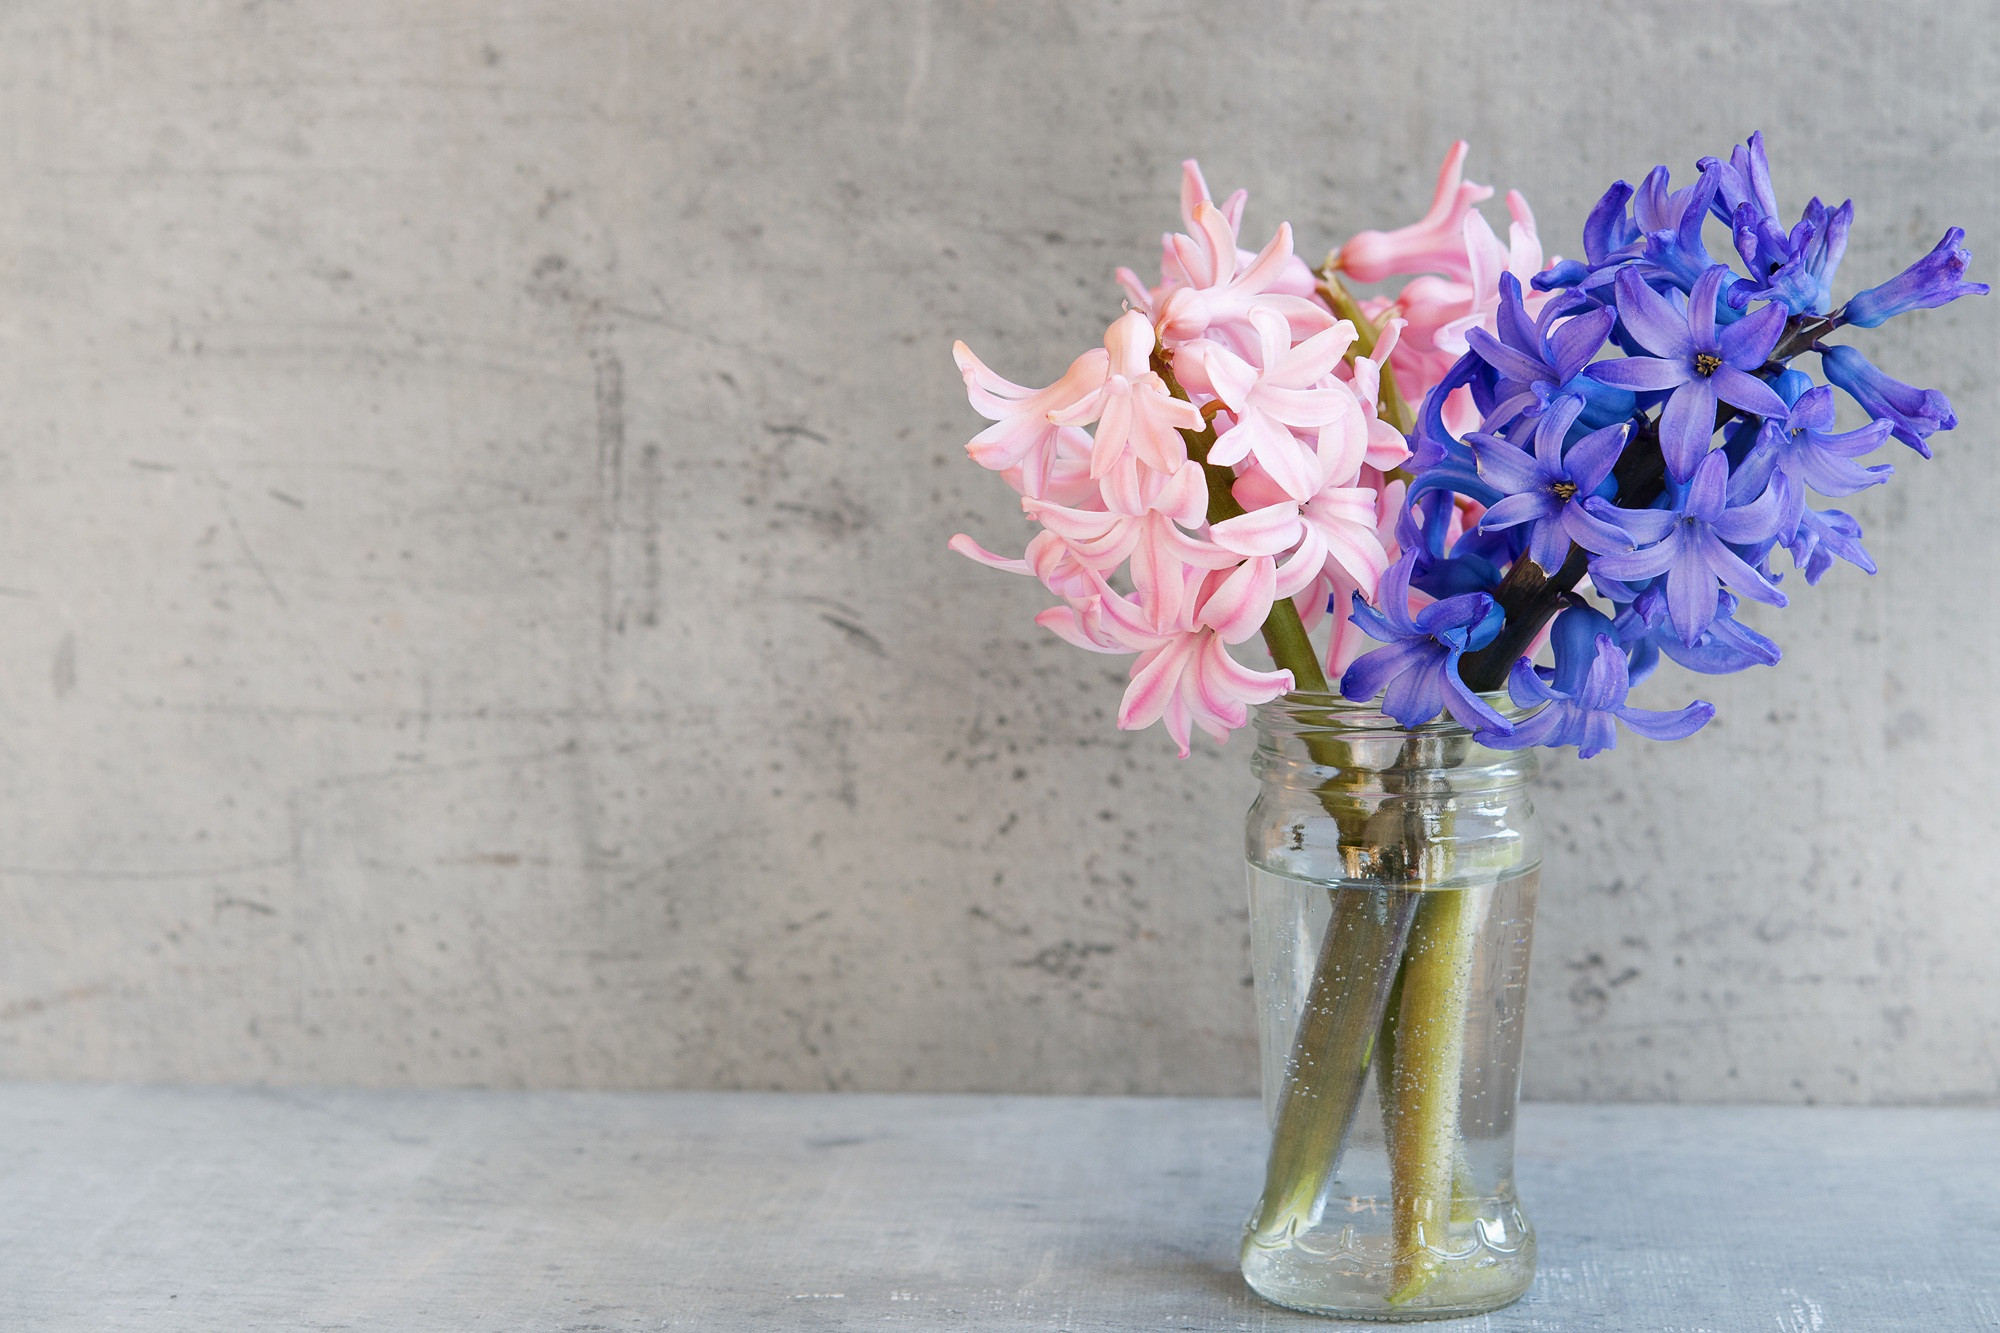 blue glass vase of free images glass vase blue pink close deco negative space with regard to free images glass vase blue pink close deco negative space art floristry hyacinth spring flowers text freedom flowering plant flower bouquet